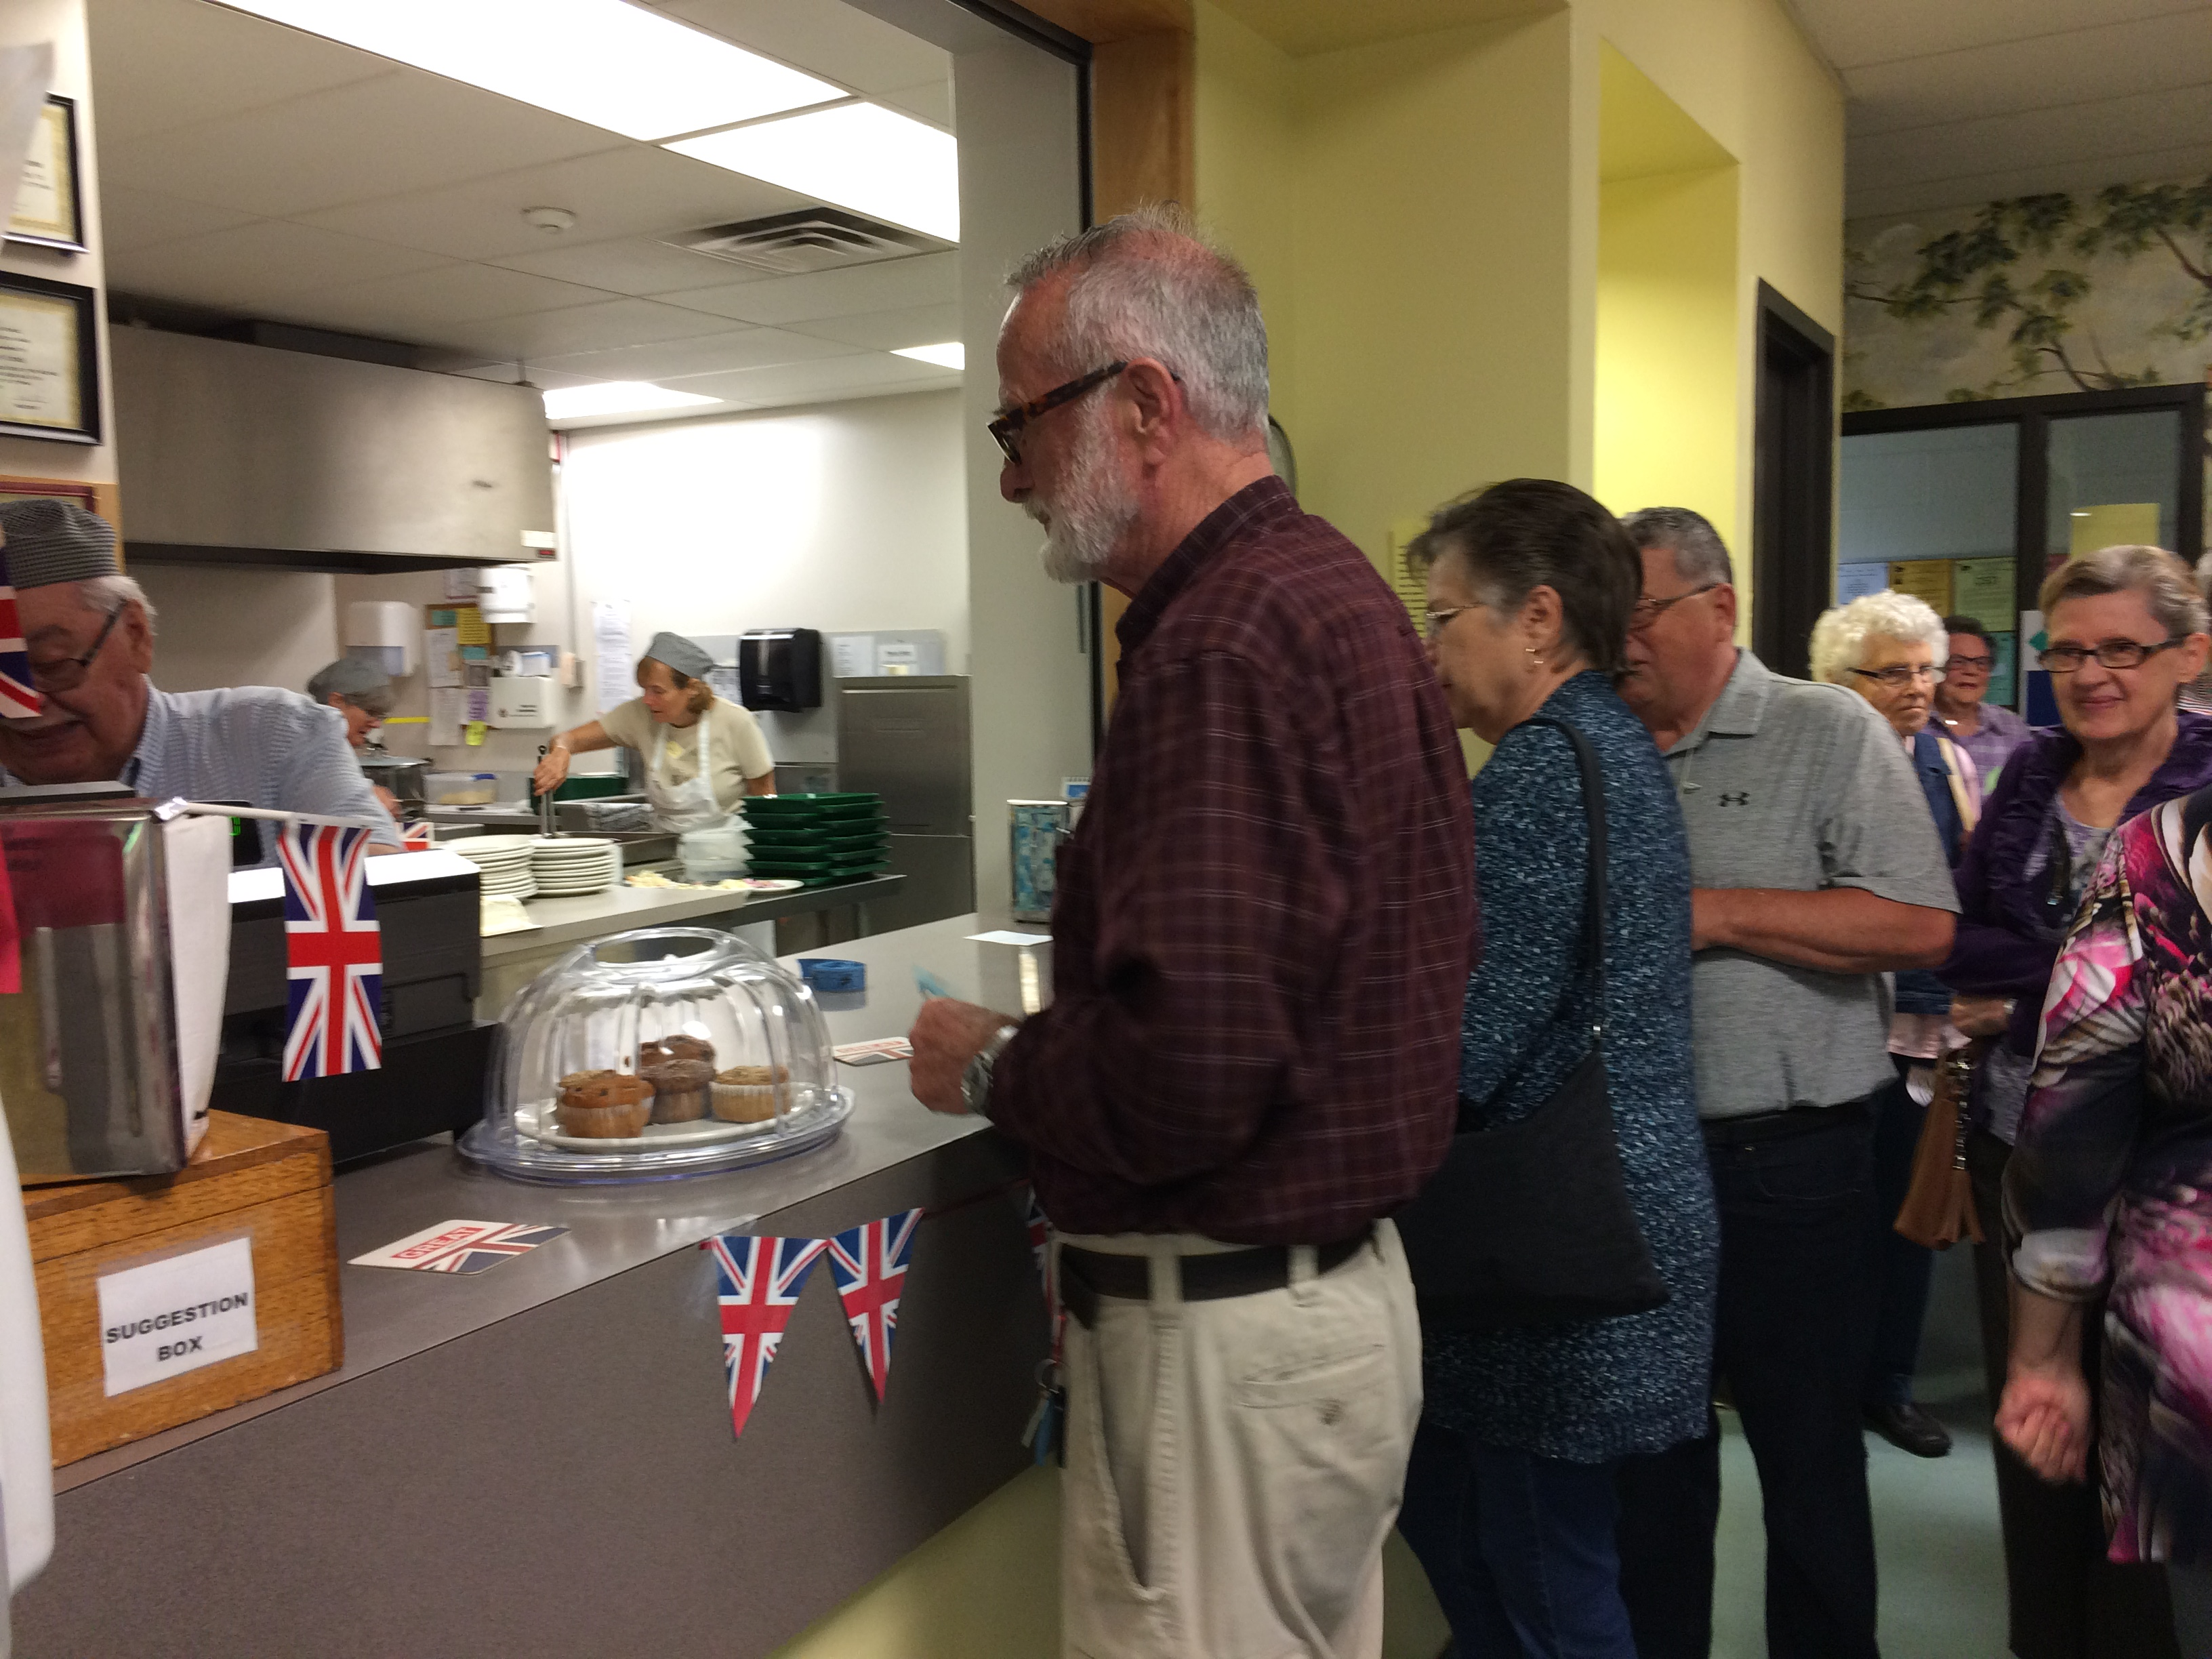 The Council Café provides inexpensive meals and an opportunity to socialize. Photo submitted